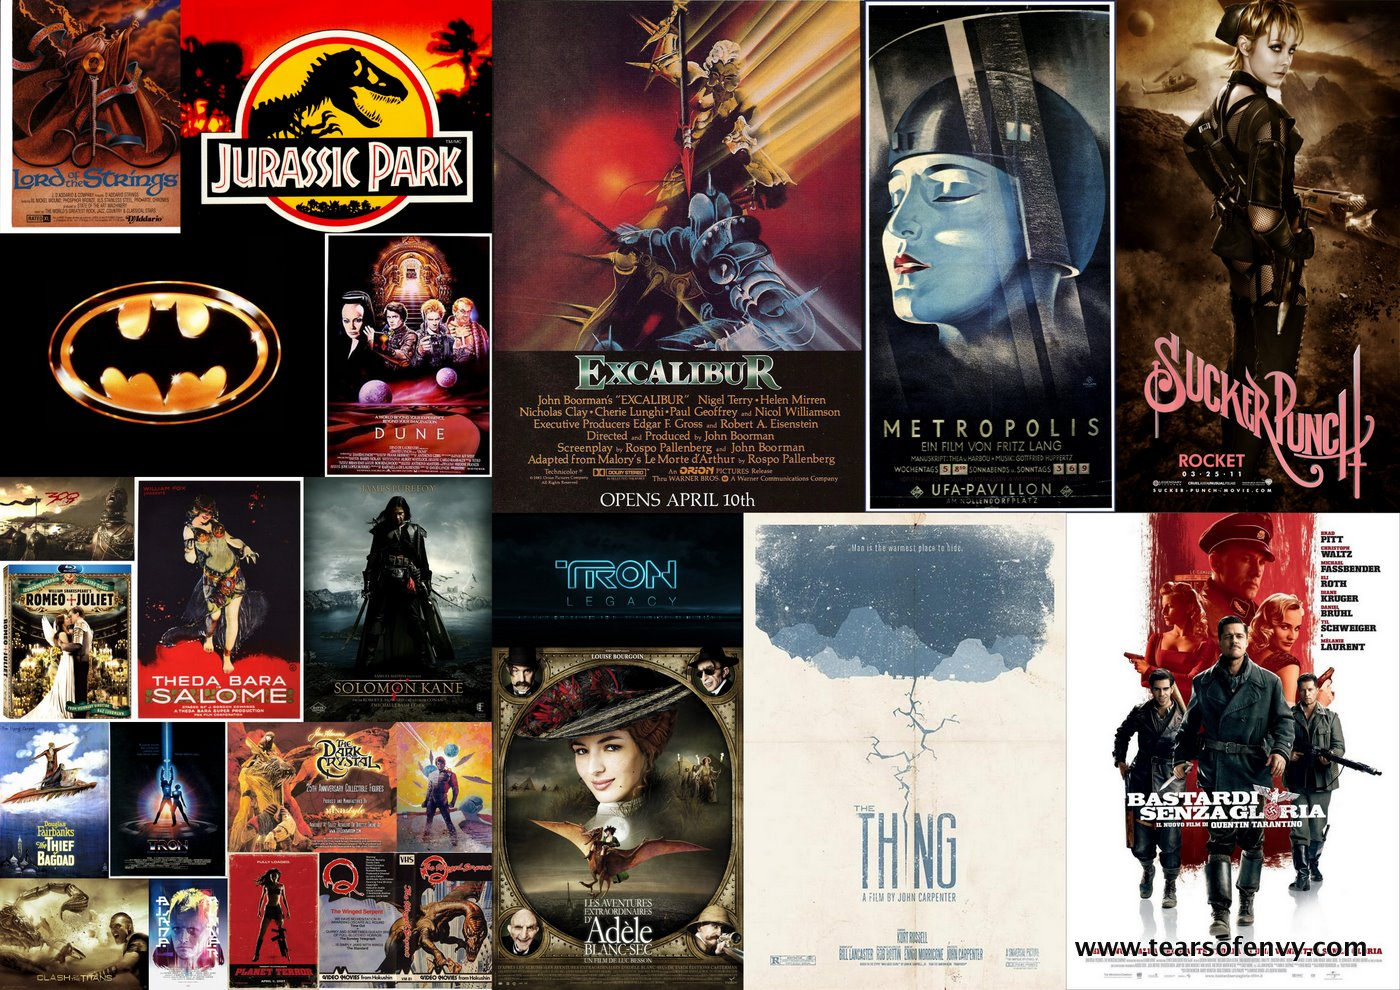 Question of the Day: Favorite Film Soundtrack?